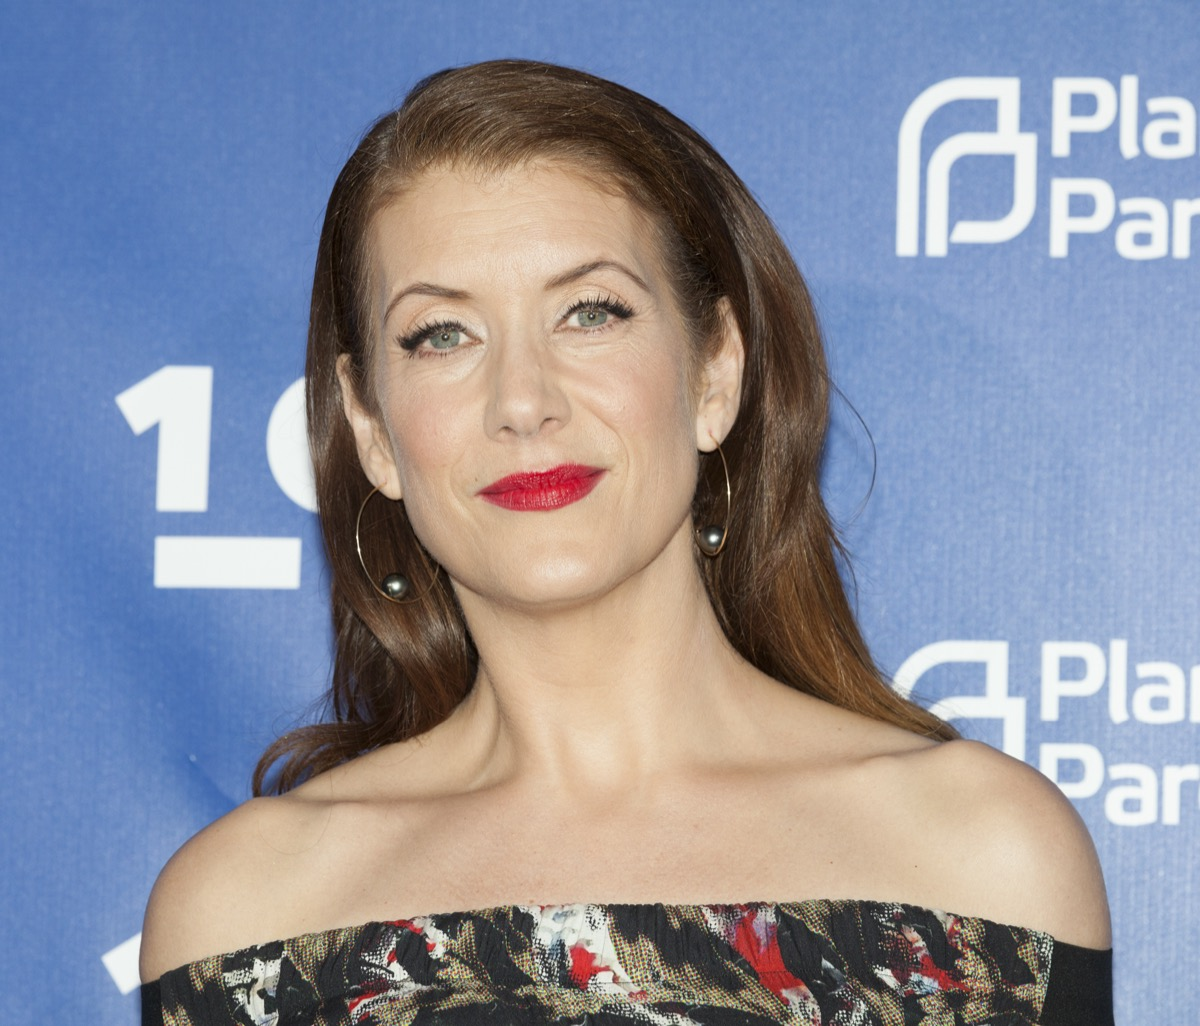 Kate Walsh at the Planned Parenthood 100th Anniversary Gala in 2017